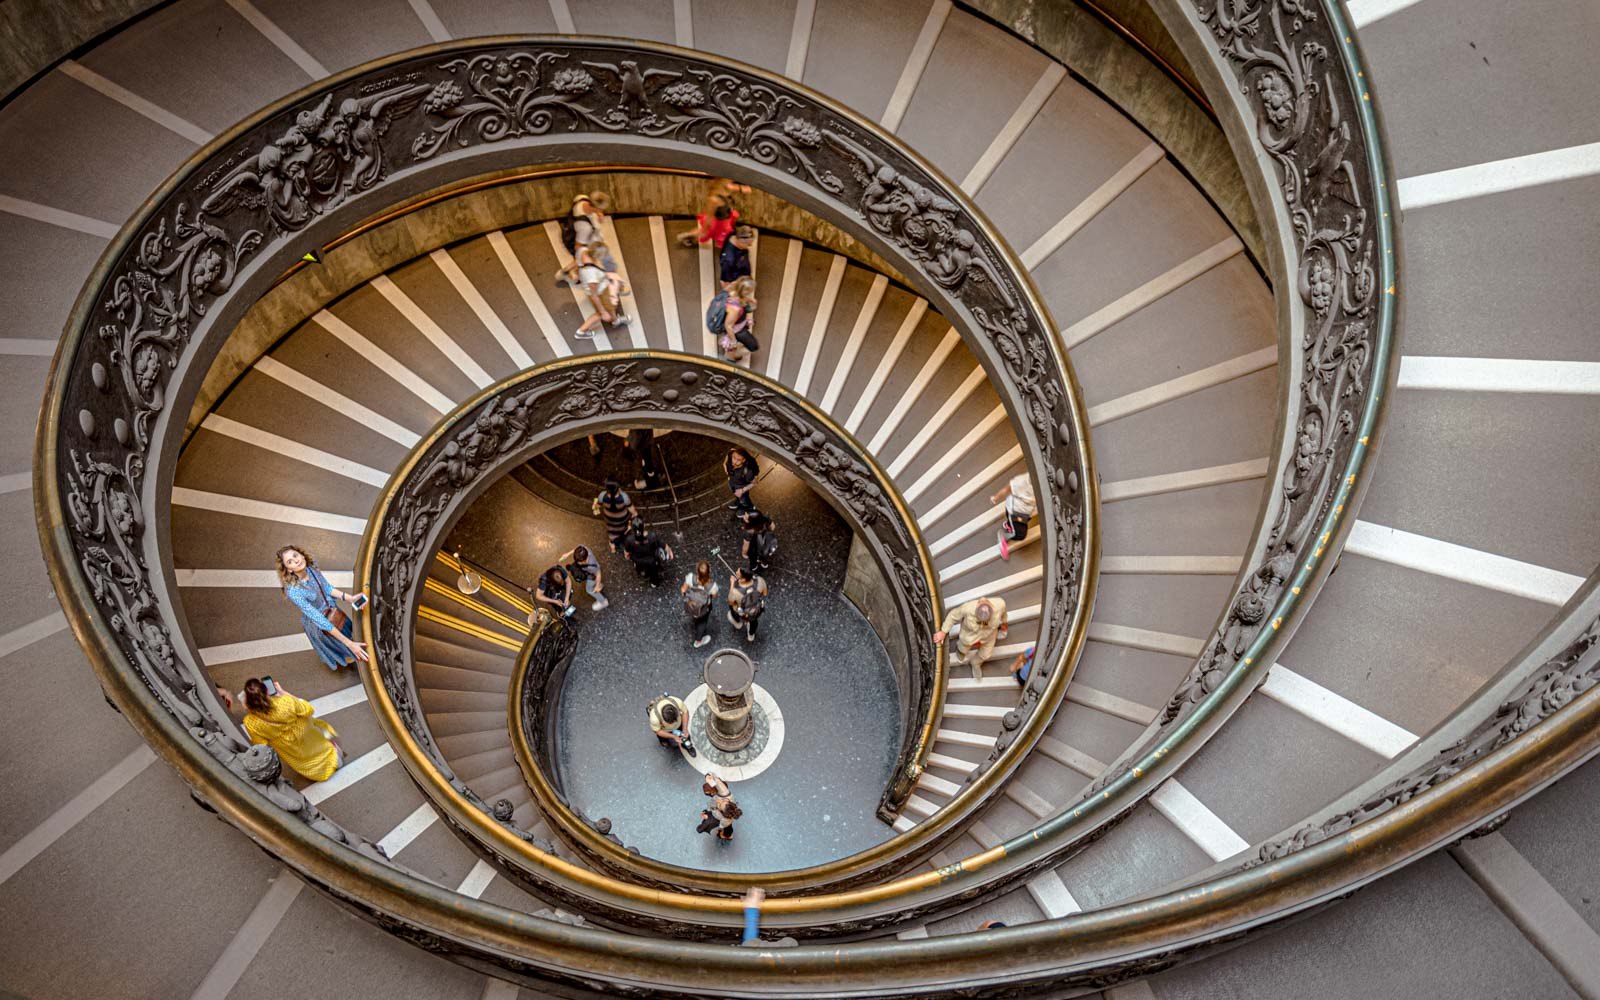 a spiral staircase at the vatican museums in rome italy